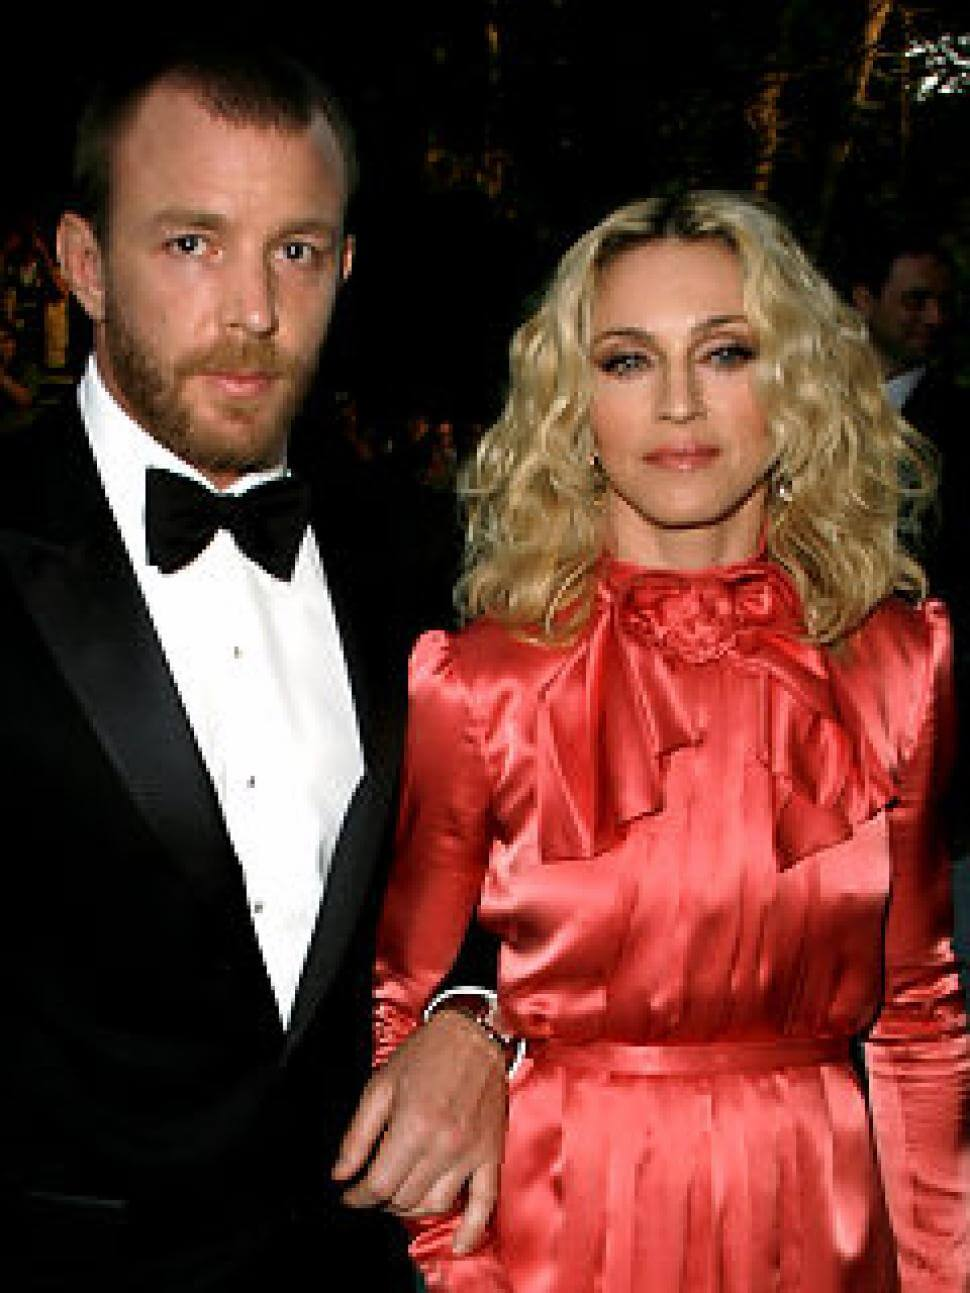 Watch Madonna And Guy Ritchie Having Bumpy Time, Says His Dad video